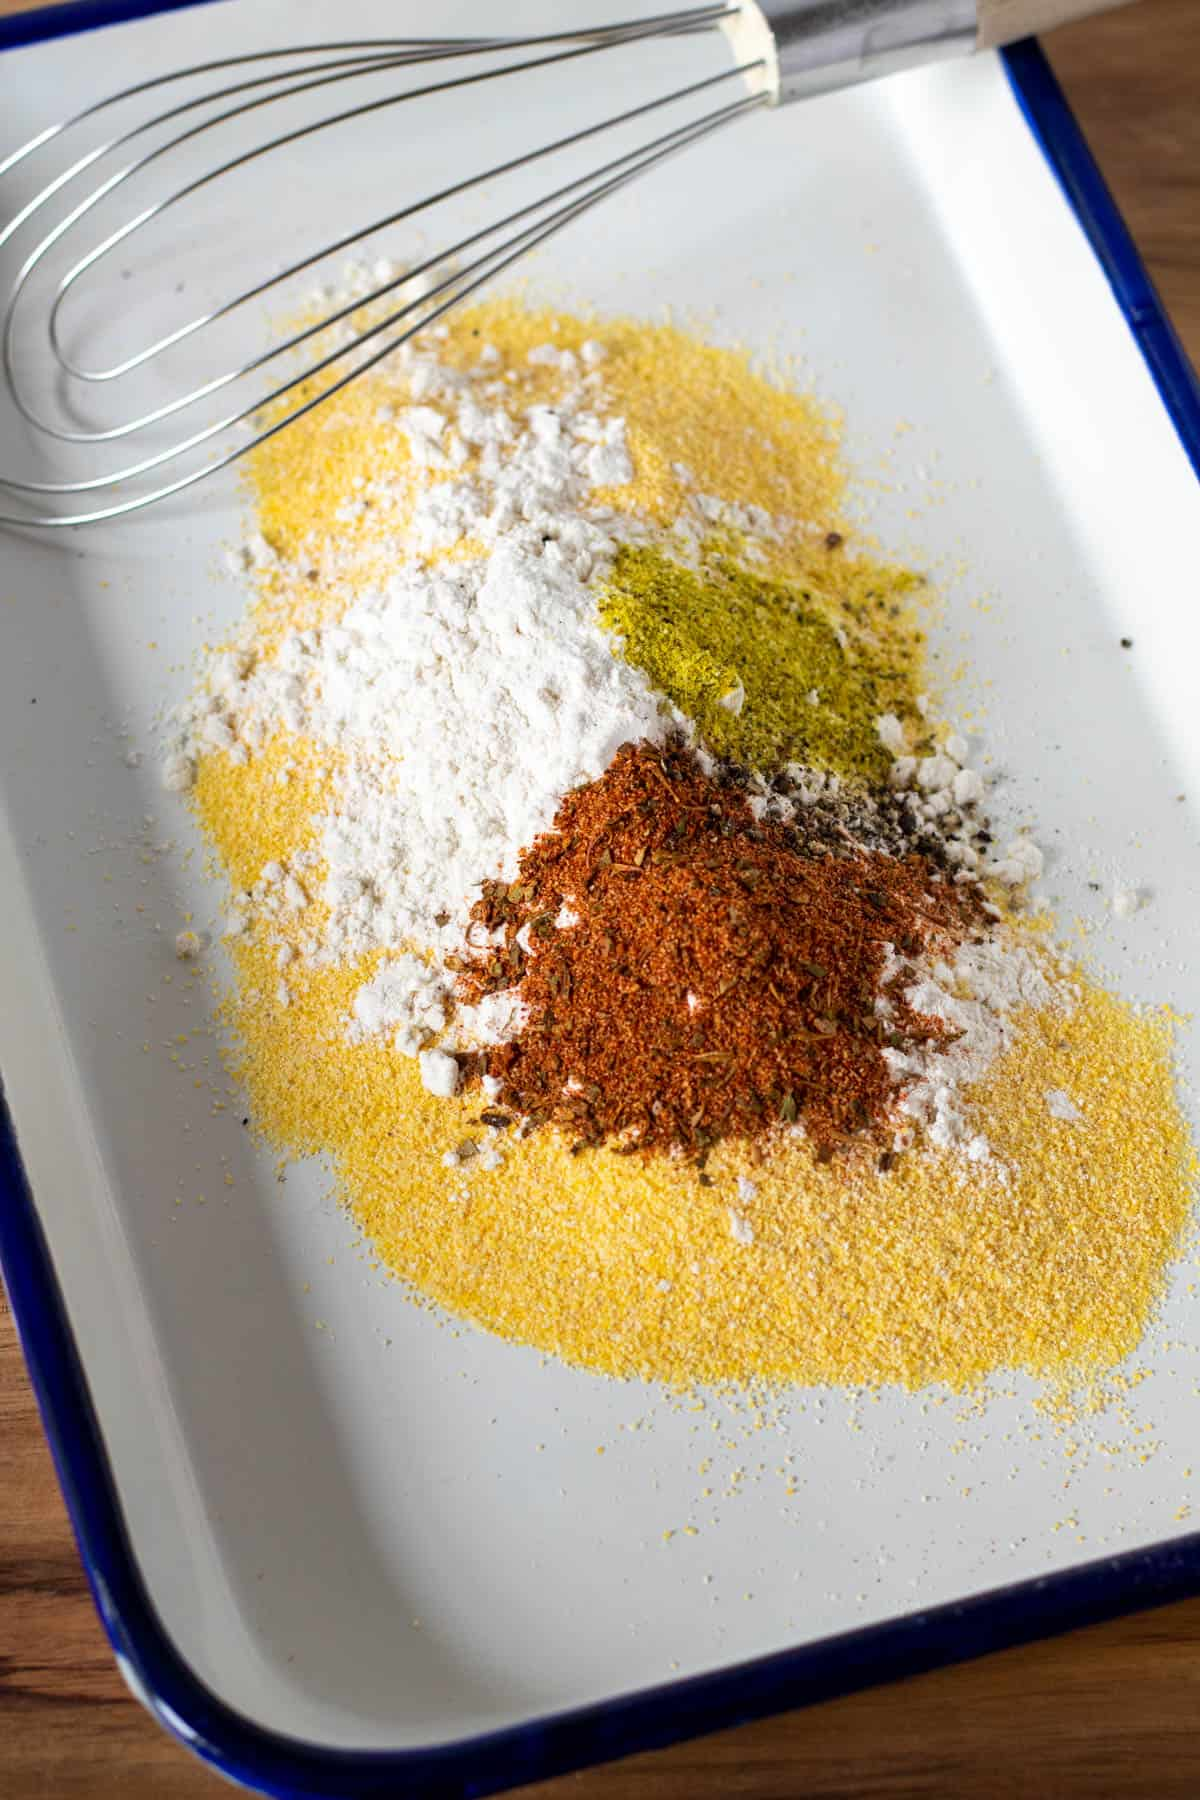 Dry ingredients in tray before mixing.